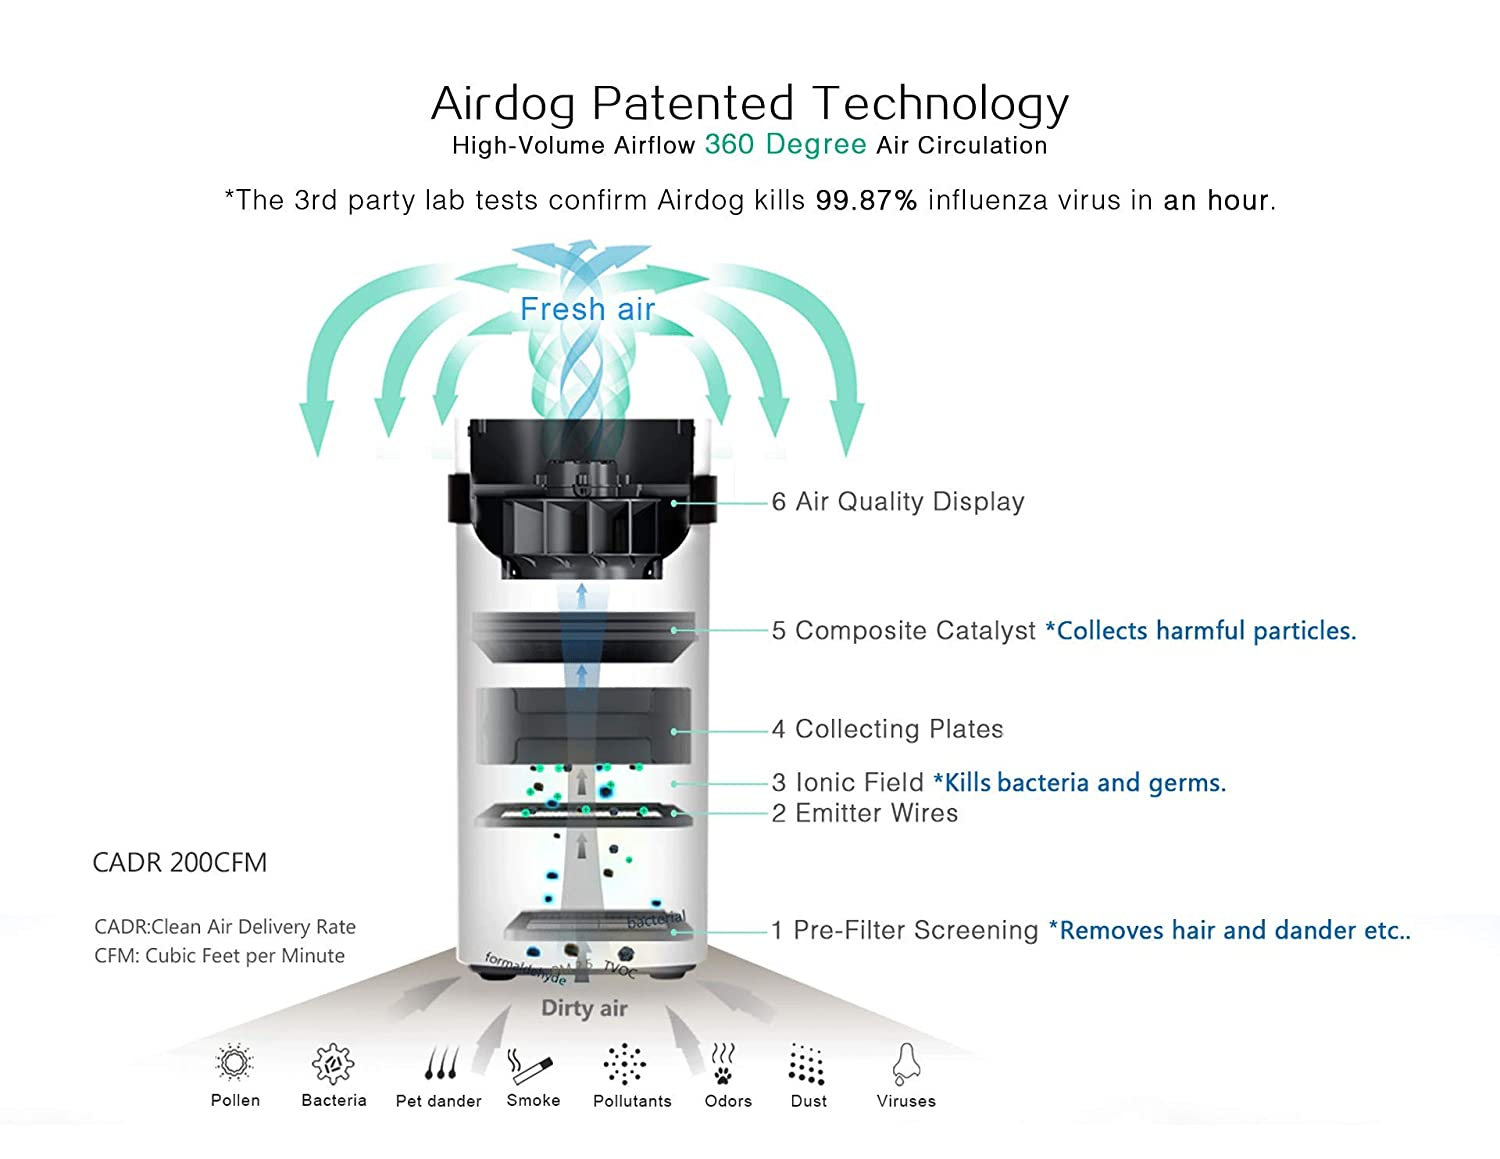 Airdog X5 Non Filter Air Purifier For Allergy And Asthma Wiring Diagrams Asthma146nm 00146 Microns Level Beyond Hepa Ultra Quiet Washableenergy Saving Home